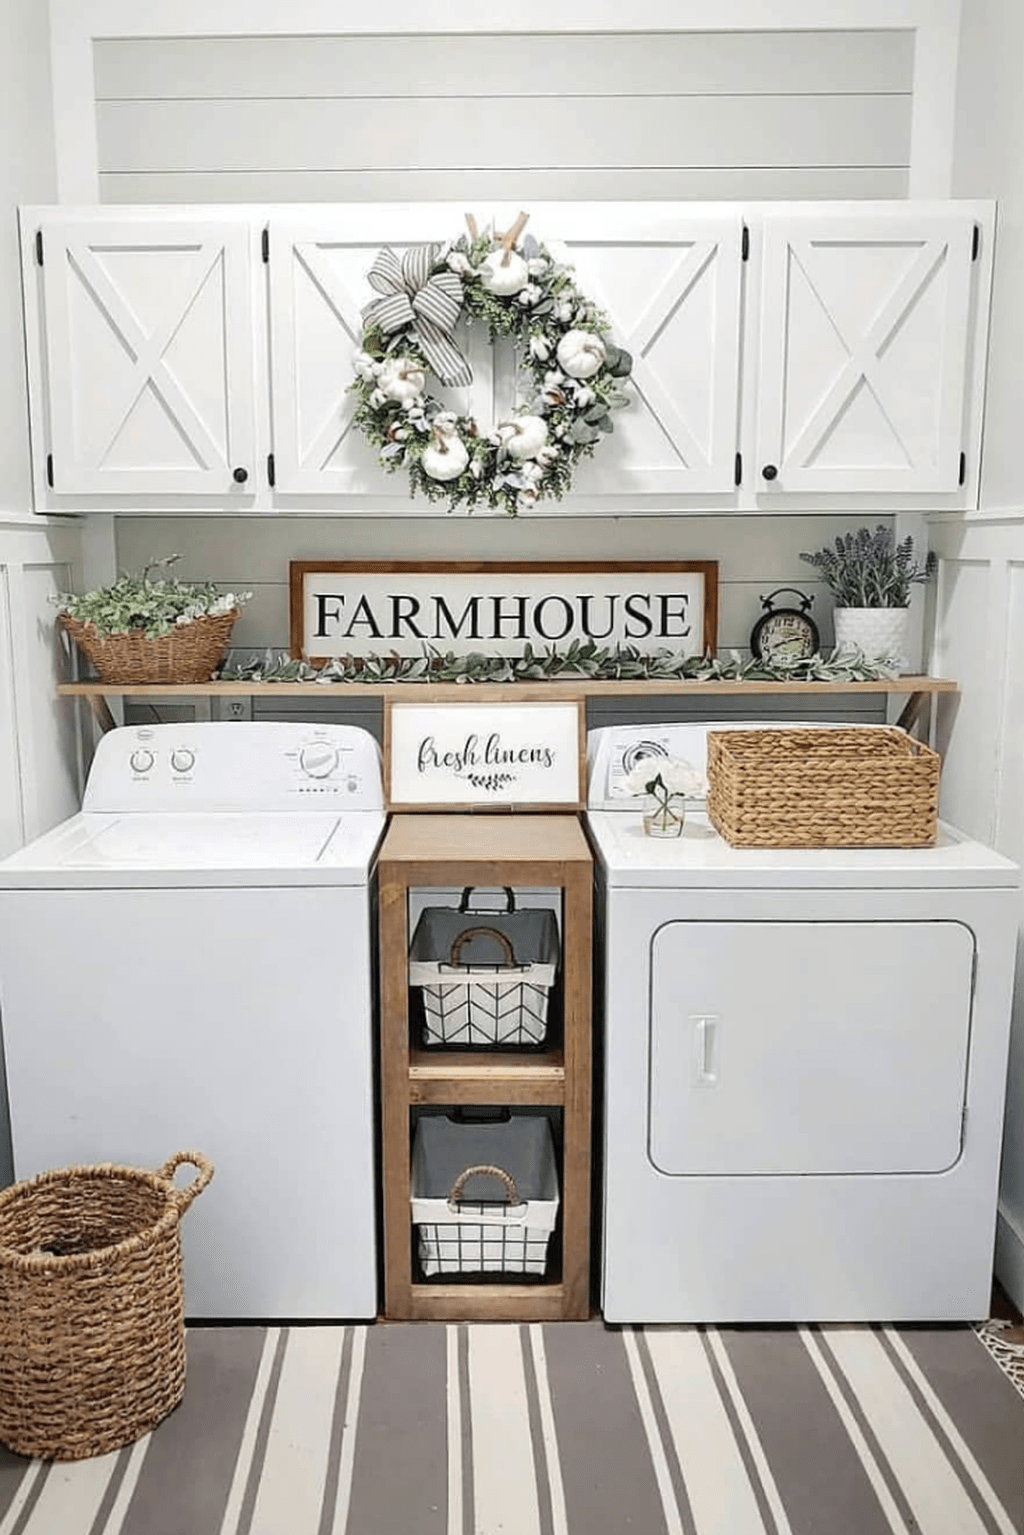 The Best Ideas To Decorate Interior Design With Farmhouse Style 02